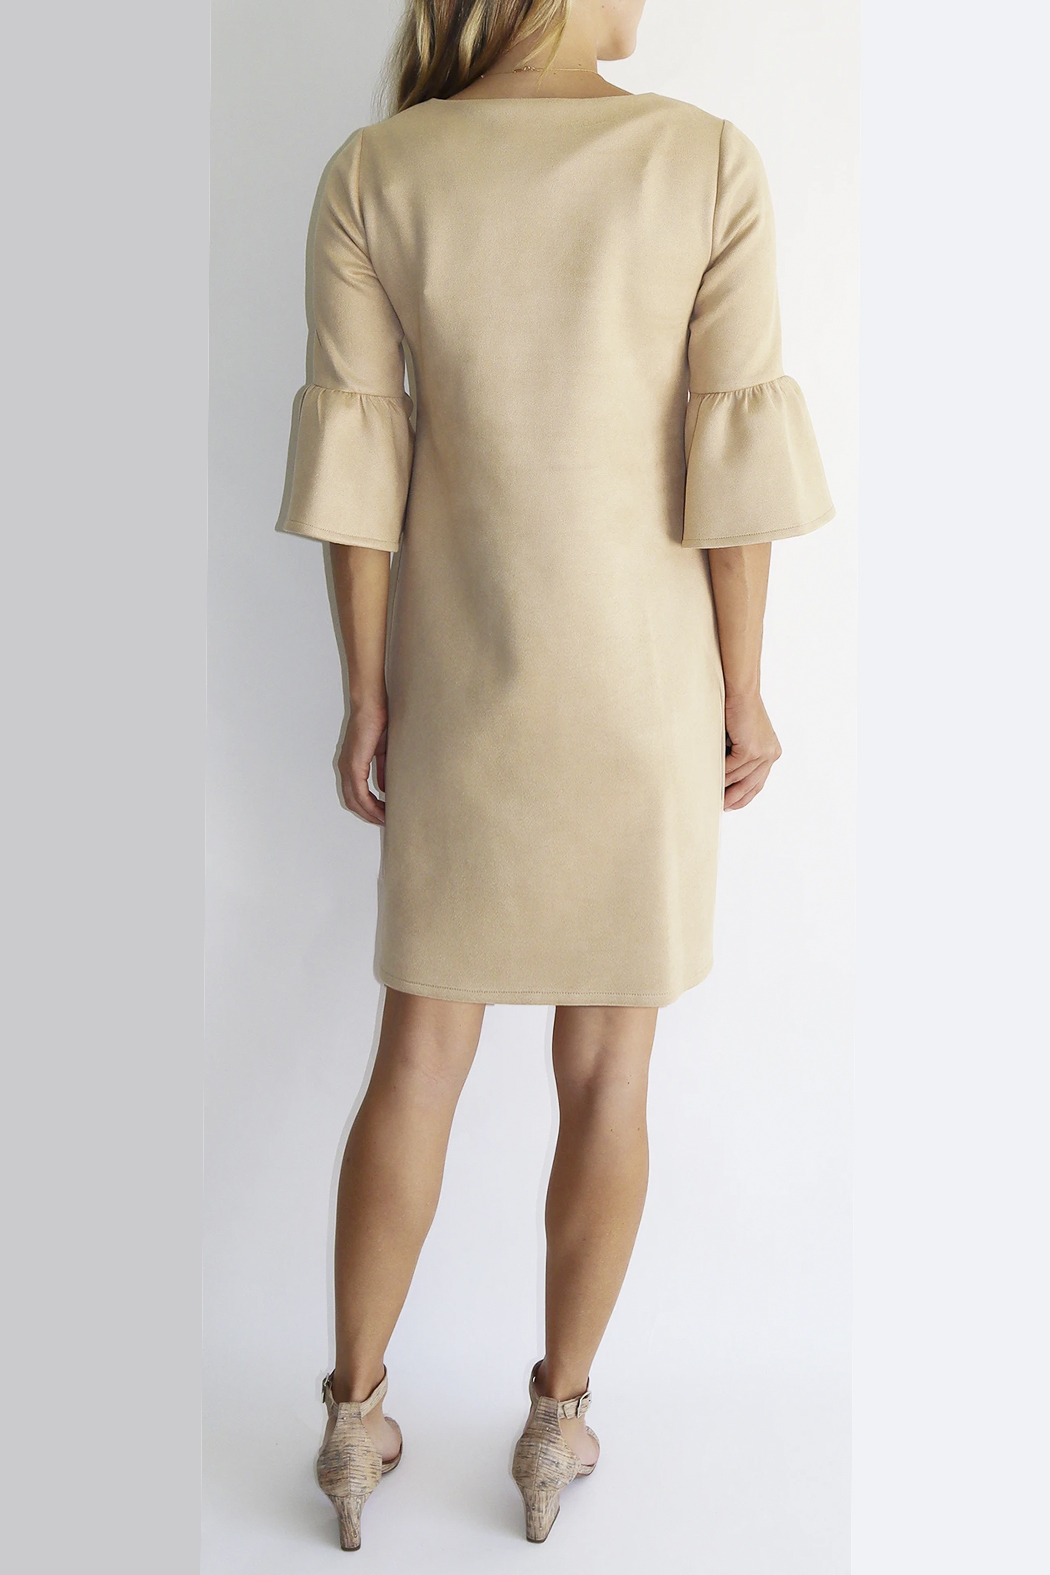 Jude Connally Shelby Faux Suede Dress - Front Full Image